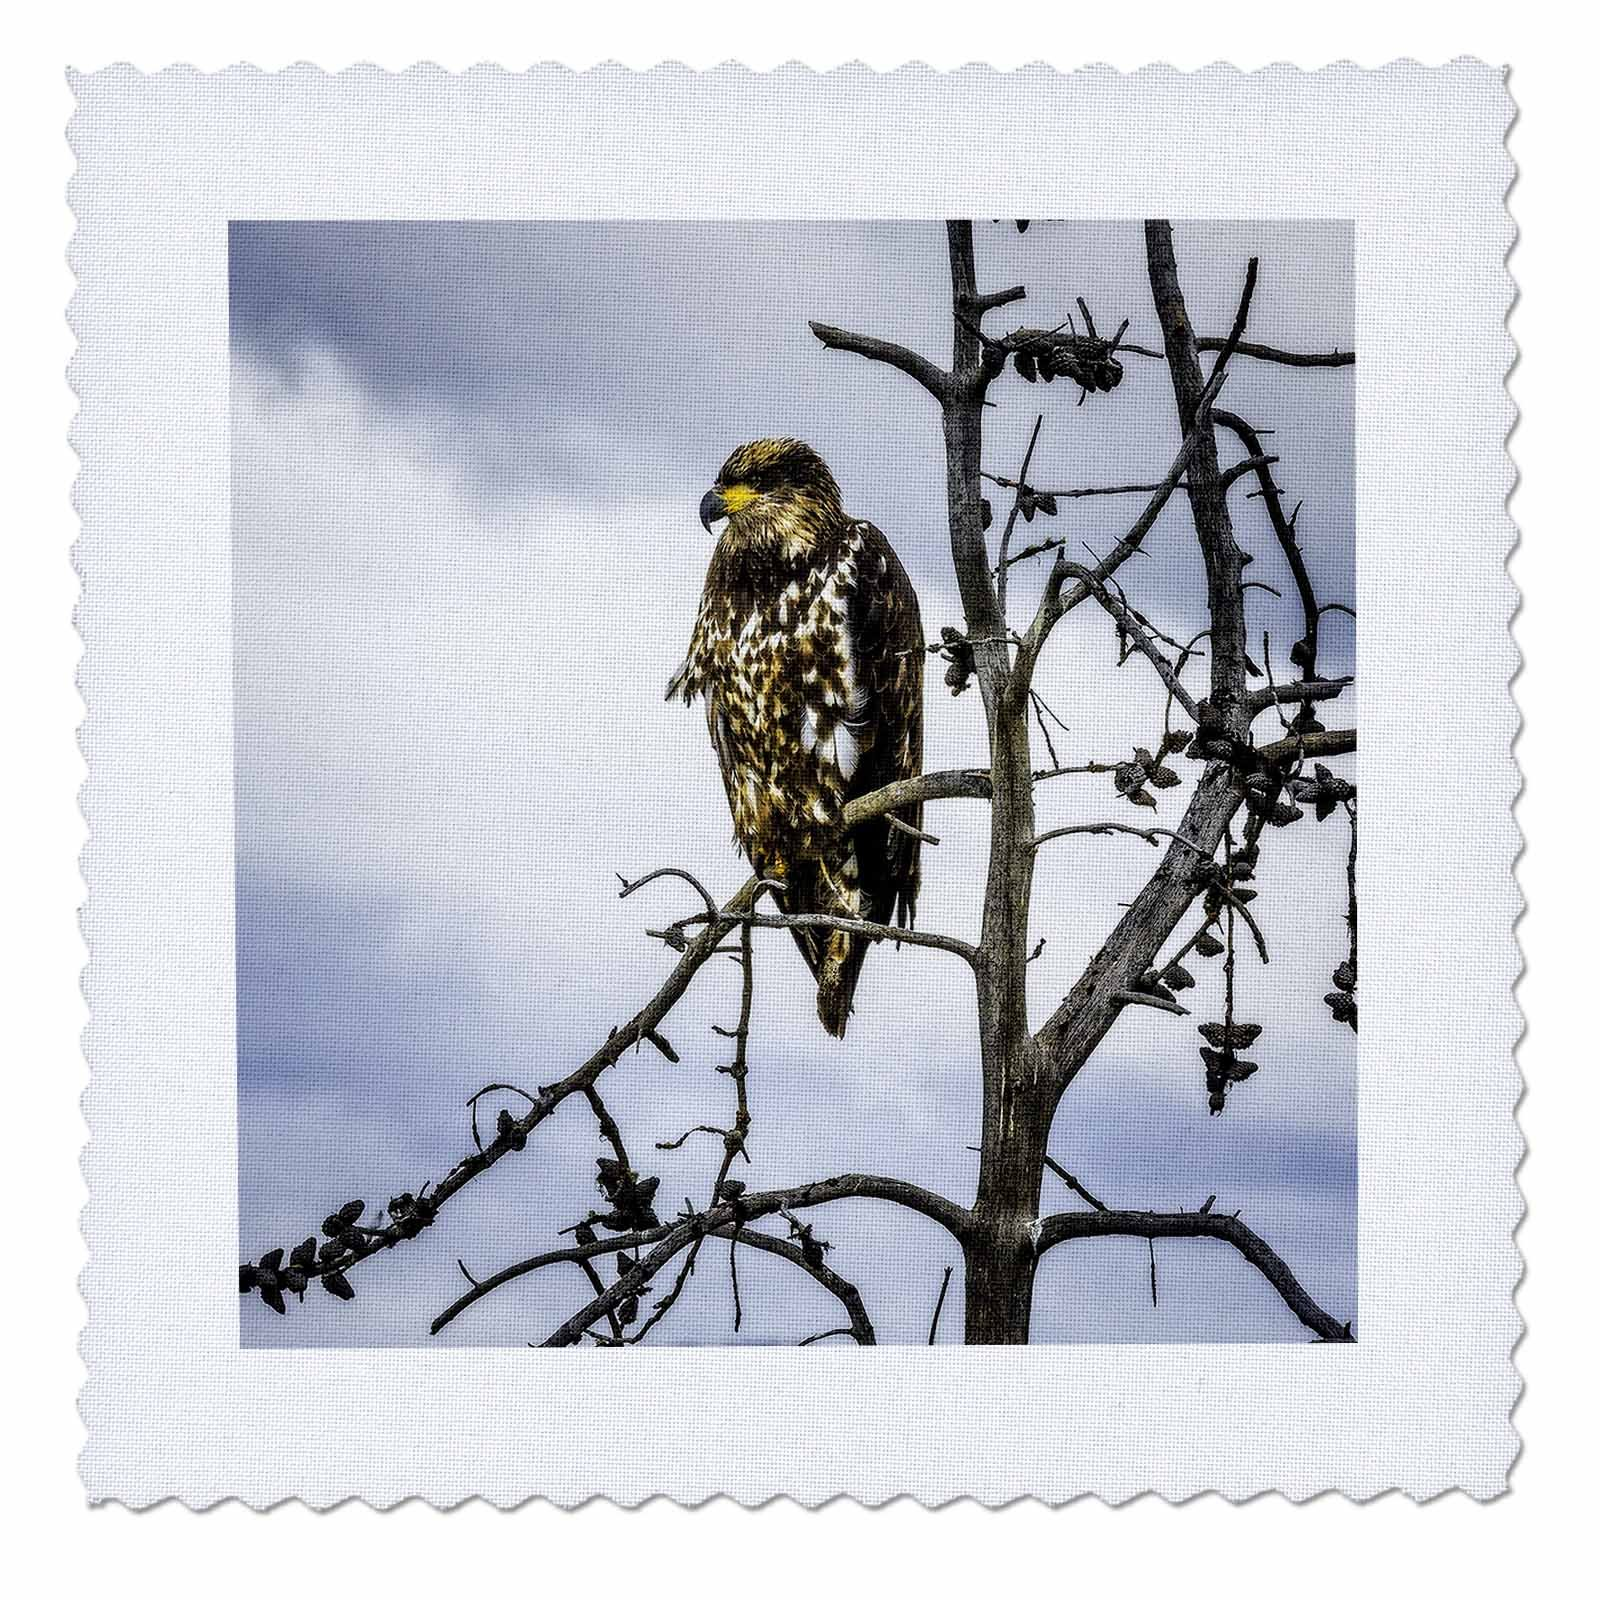 3dRose Mike Swindle Photography - Animals - Hawk in tree - 22x22 inch quilt square (qs_280208_9)